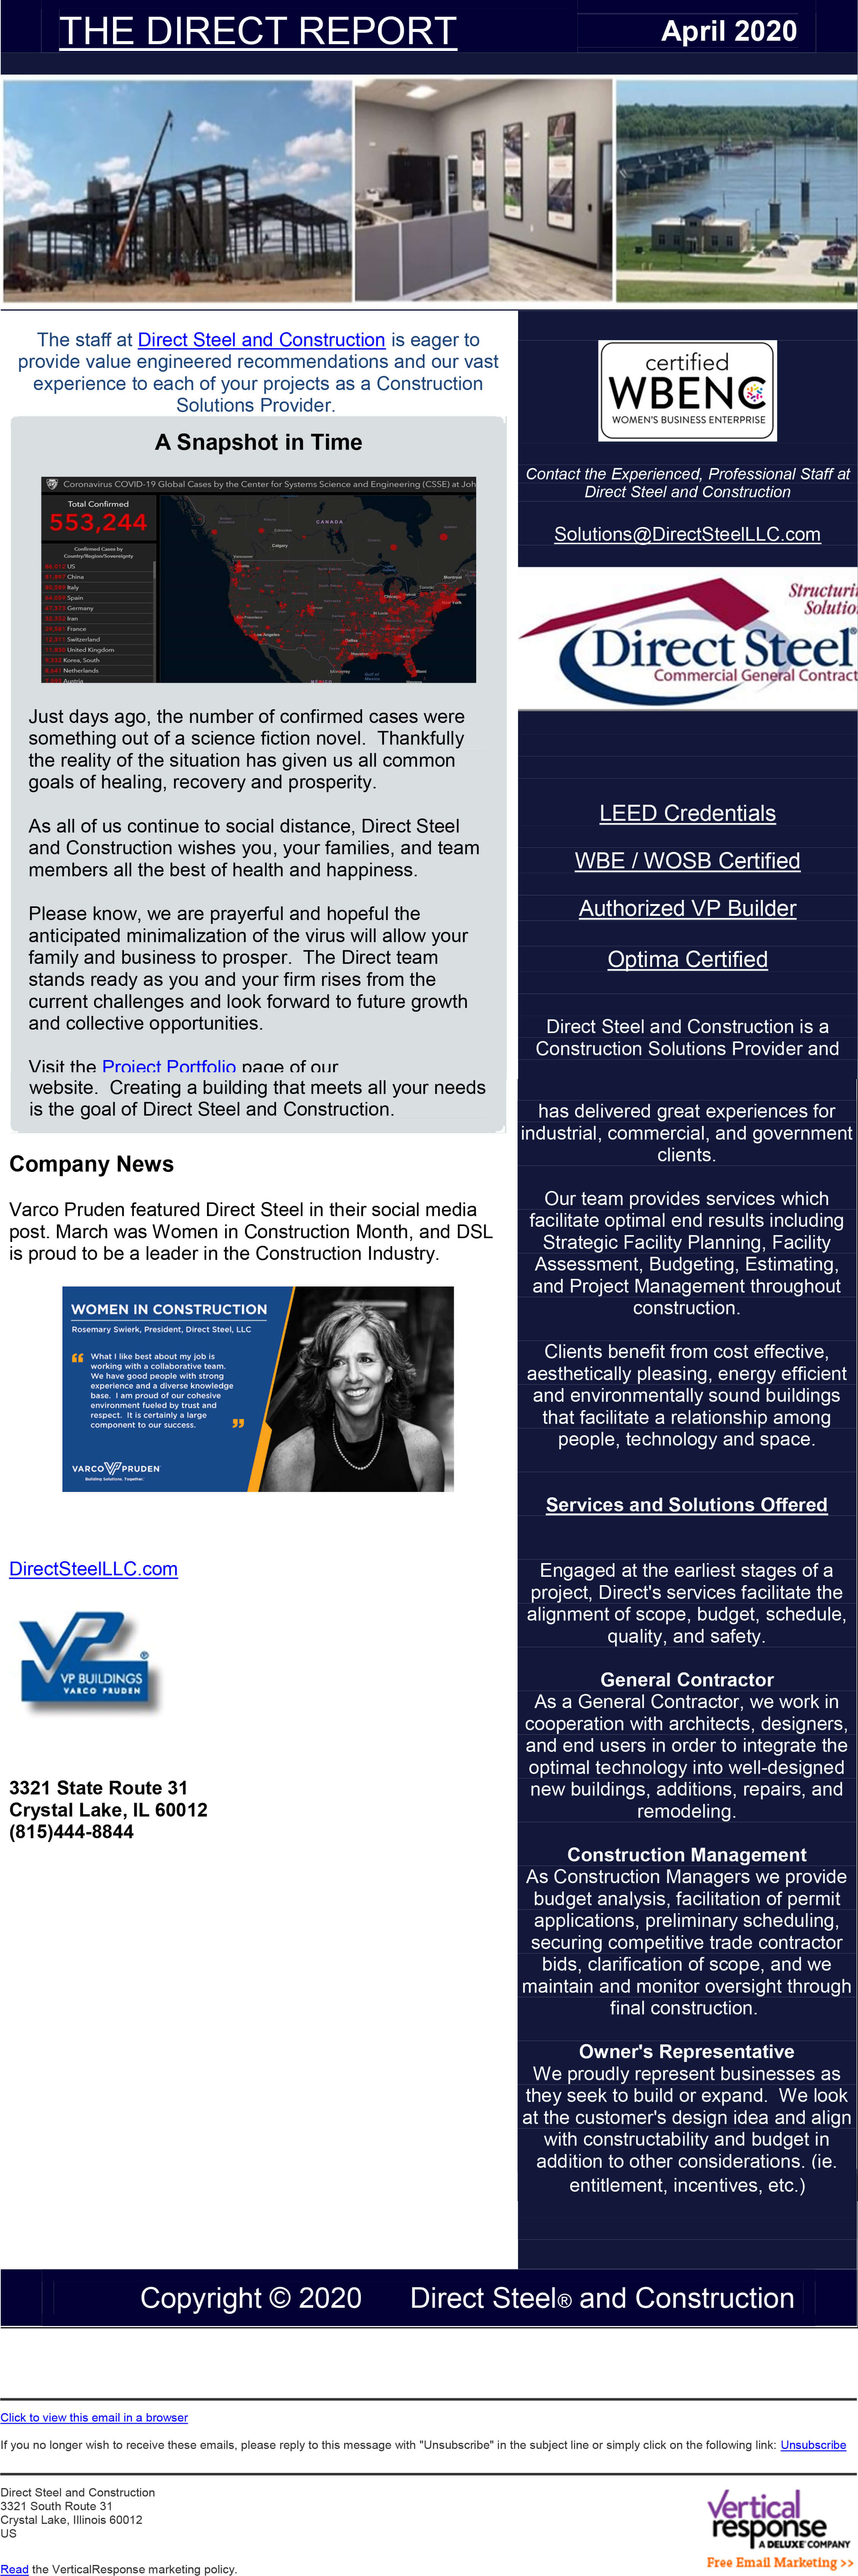 April Quarterly Newsletter